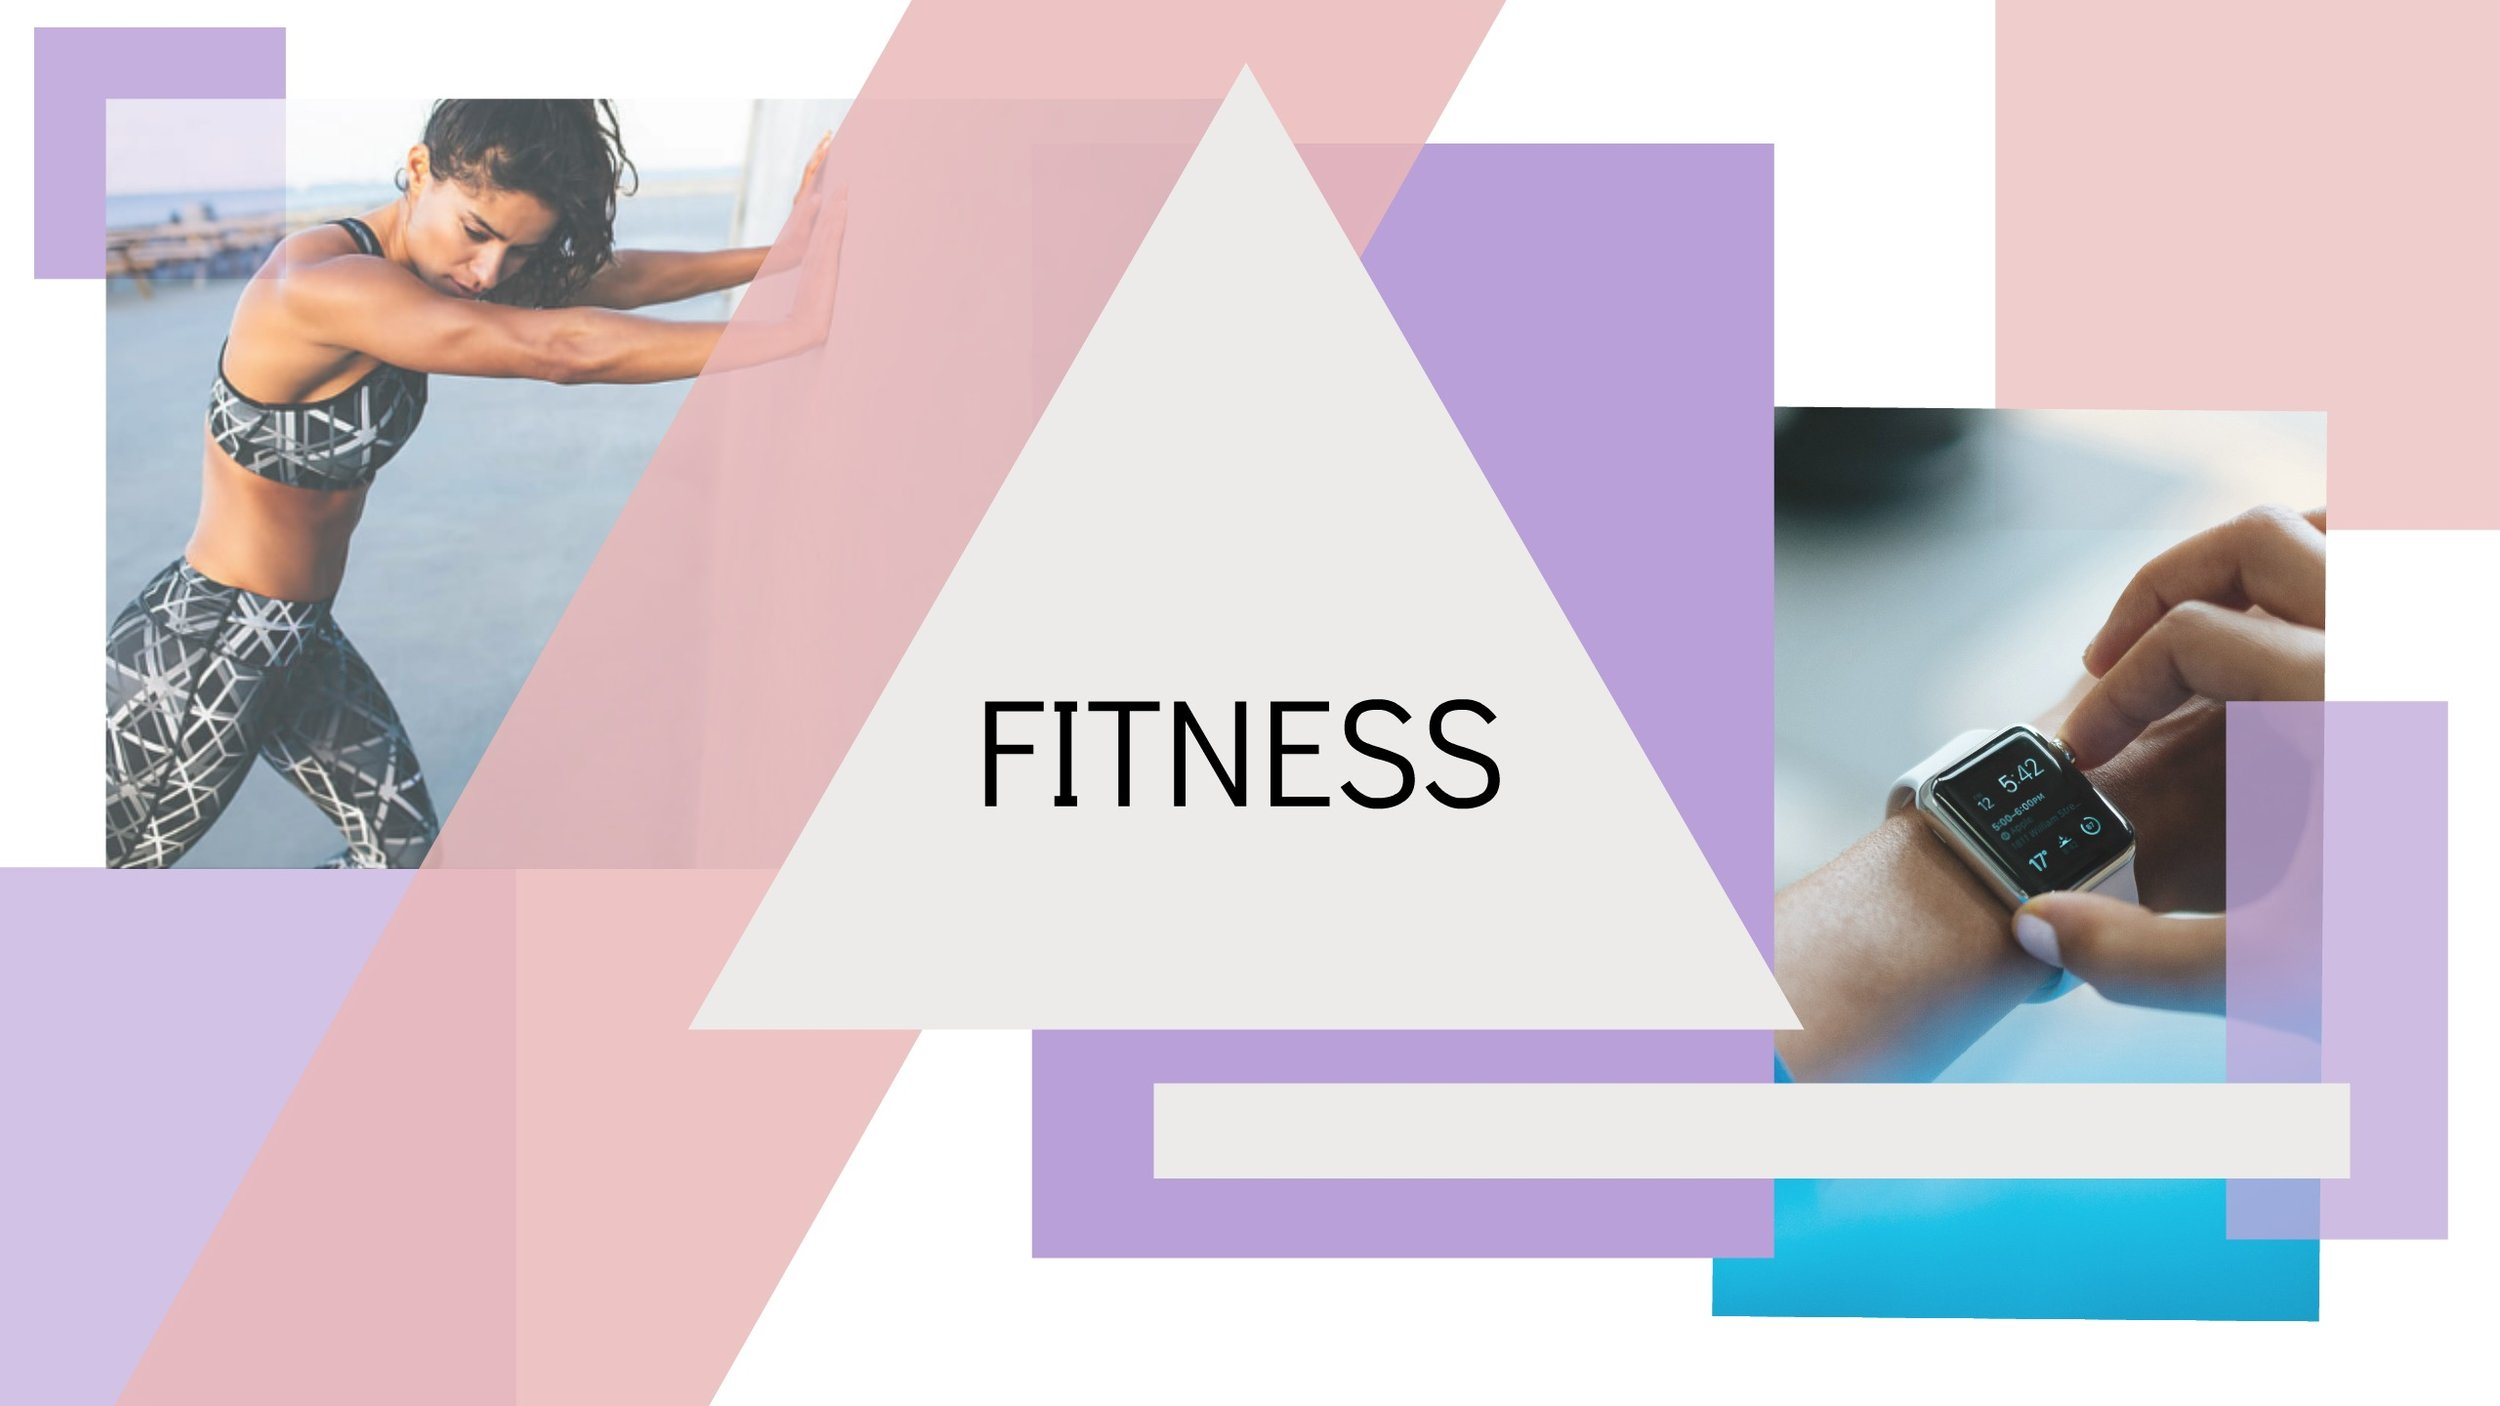 Confidence in your workout. - Instructional videos and step-by-step guides ensure confident workouts, whether you're at the gym or at home. And around here, efficiency is everything!